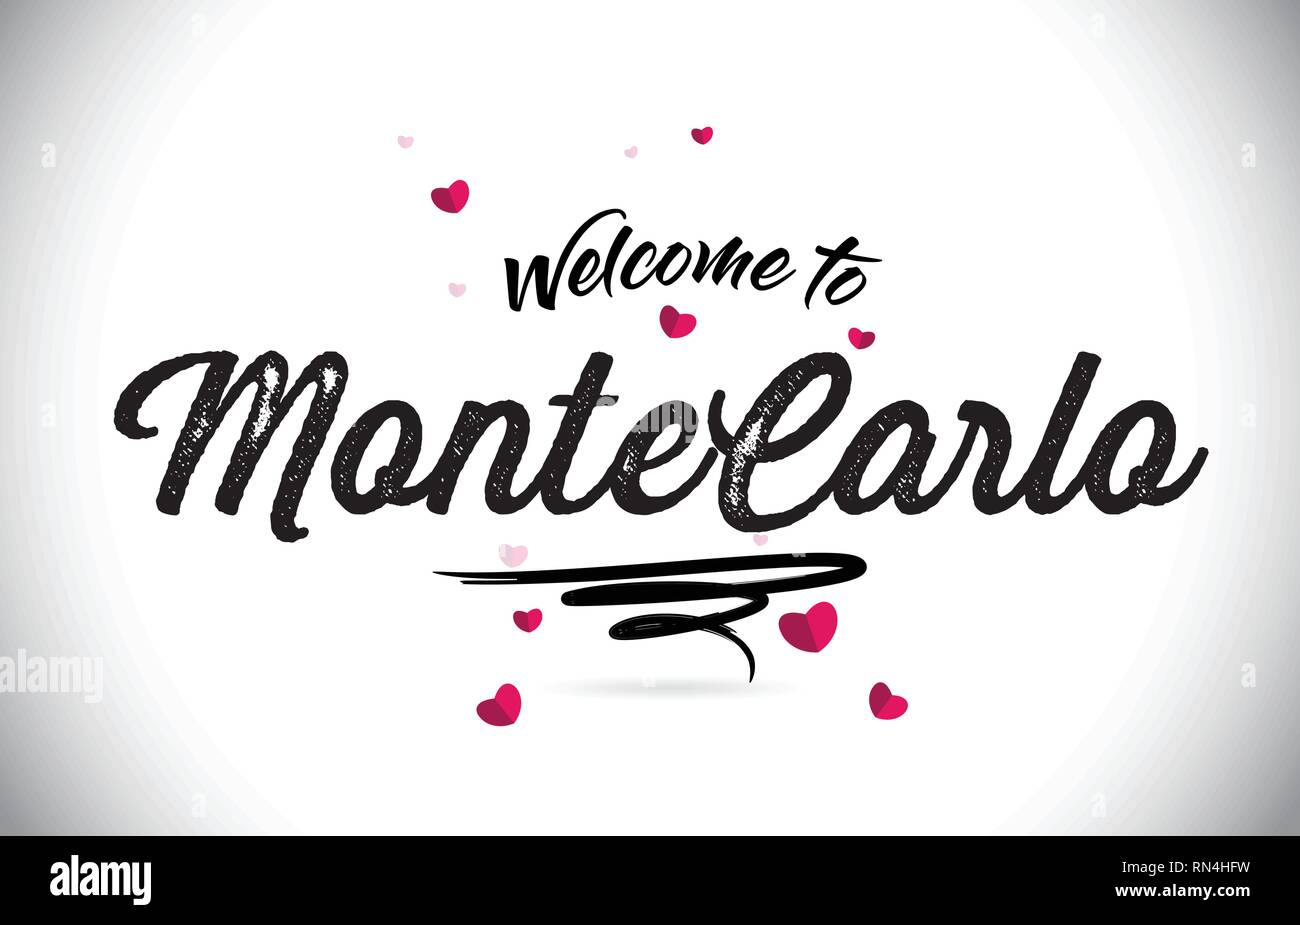 MonteCarlo Welcome To Word Text with Handwritten Font and Pink Heart Shape Design Vector Illustration. - Stock Vector